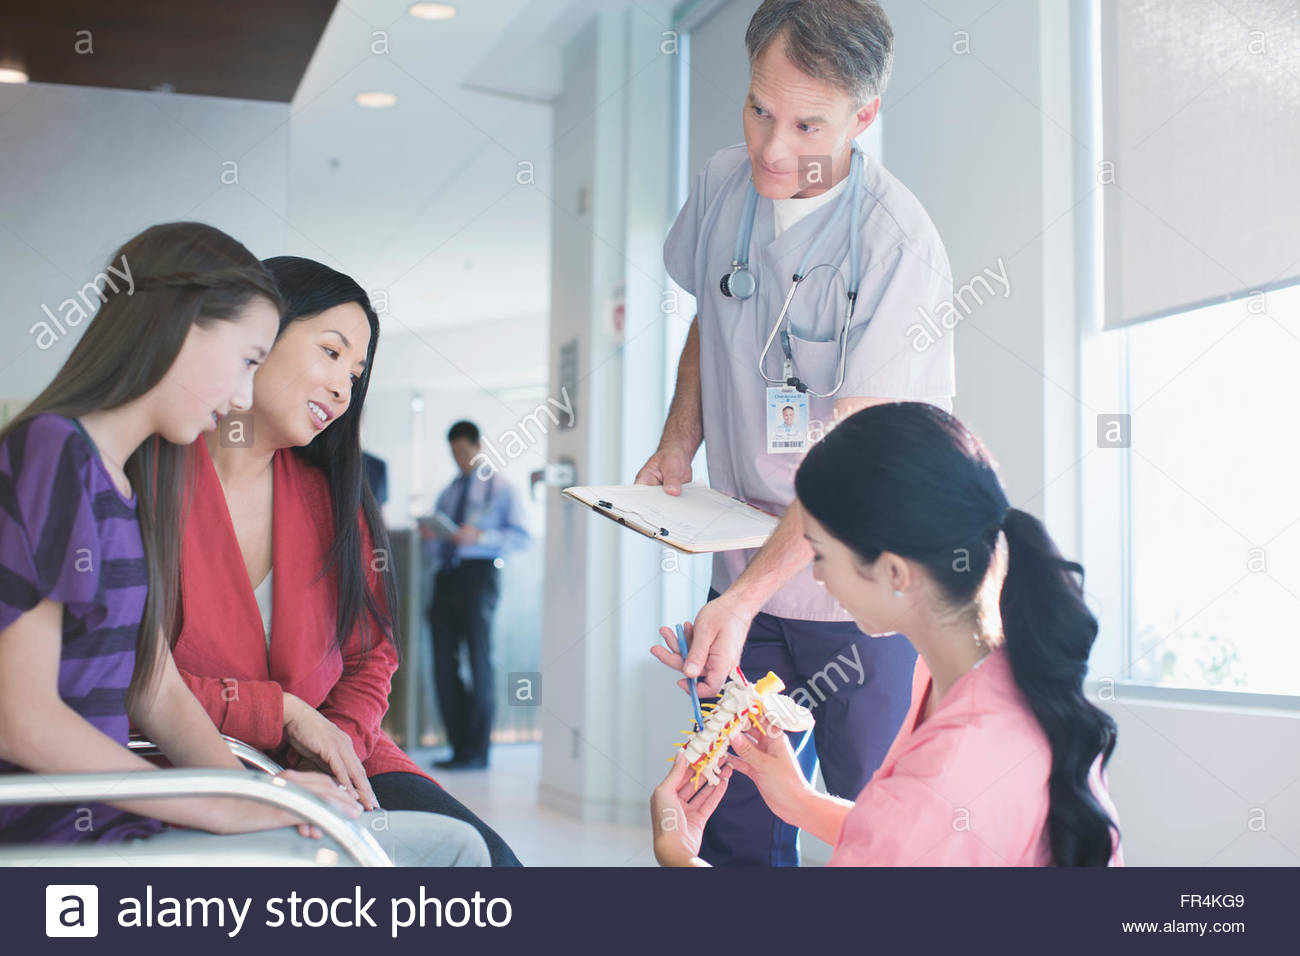 medical technician showing spinal column model to mother and daugter - Stock Image